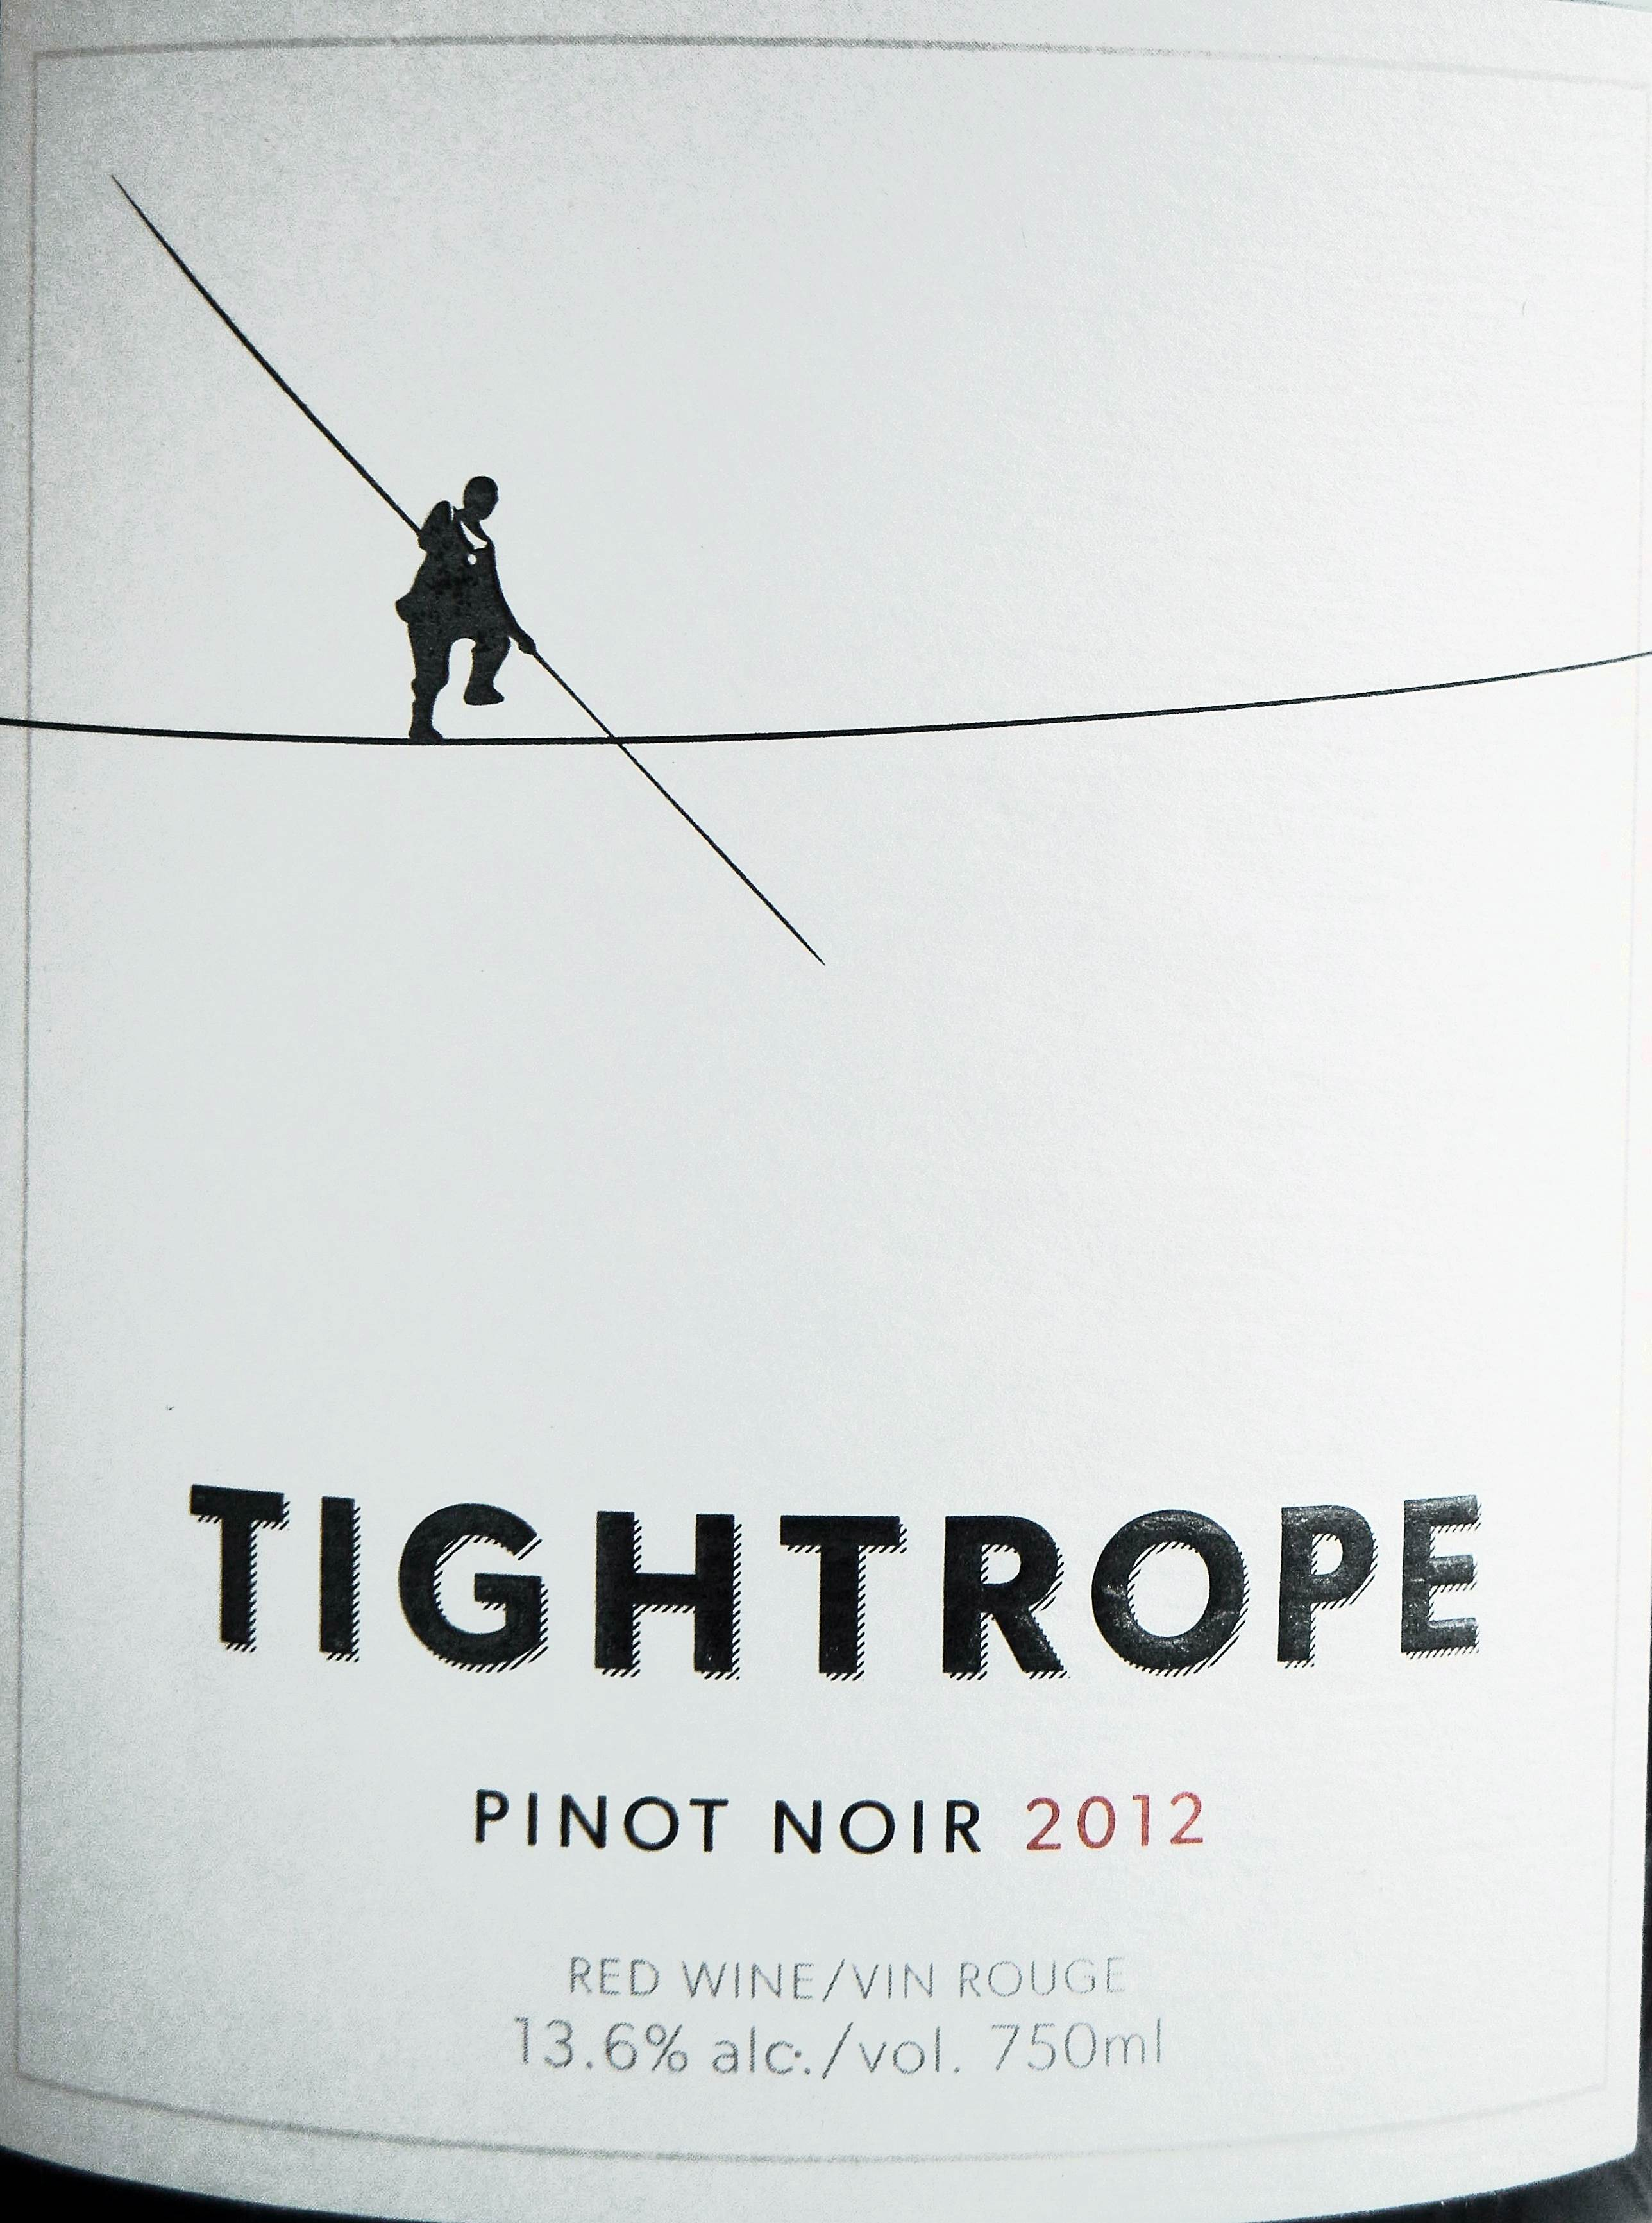 Tightrope Pinot Noir 2012 Label - BC Pinot Noir Tasting Review 19